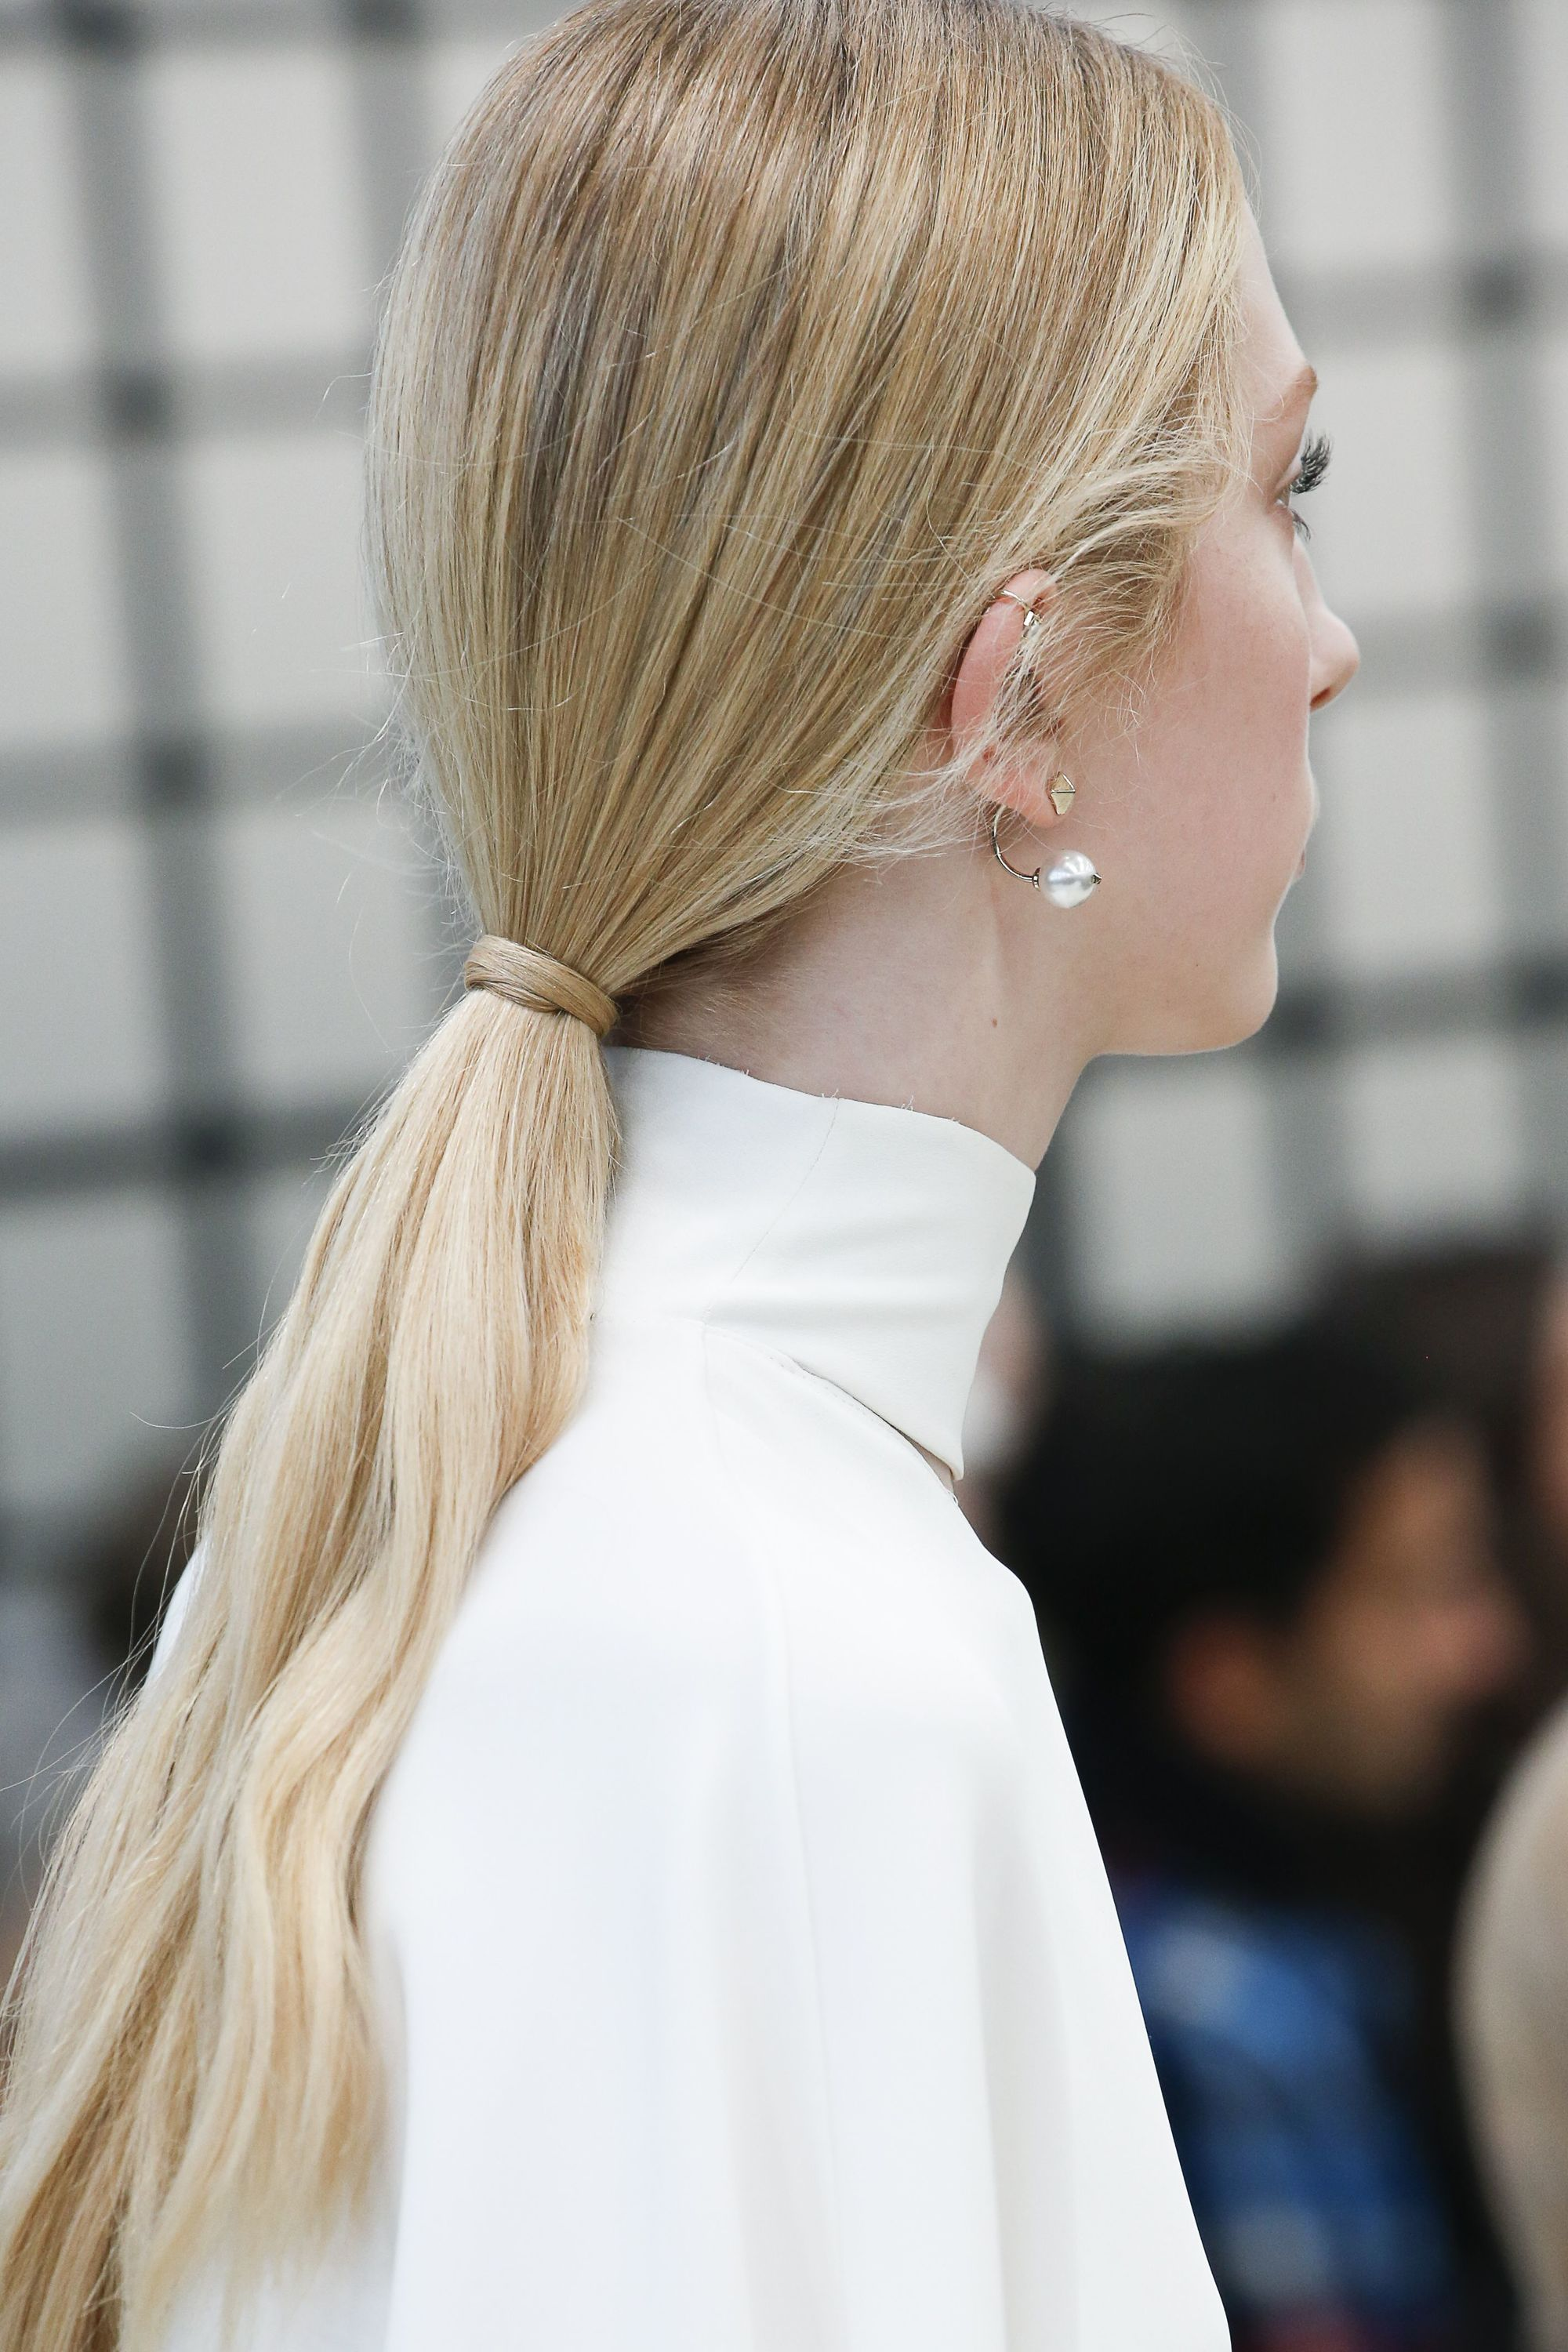 These are the stand-out hair trends from Paris Fashion Week